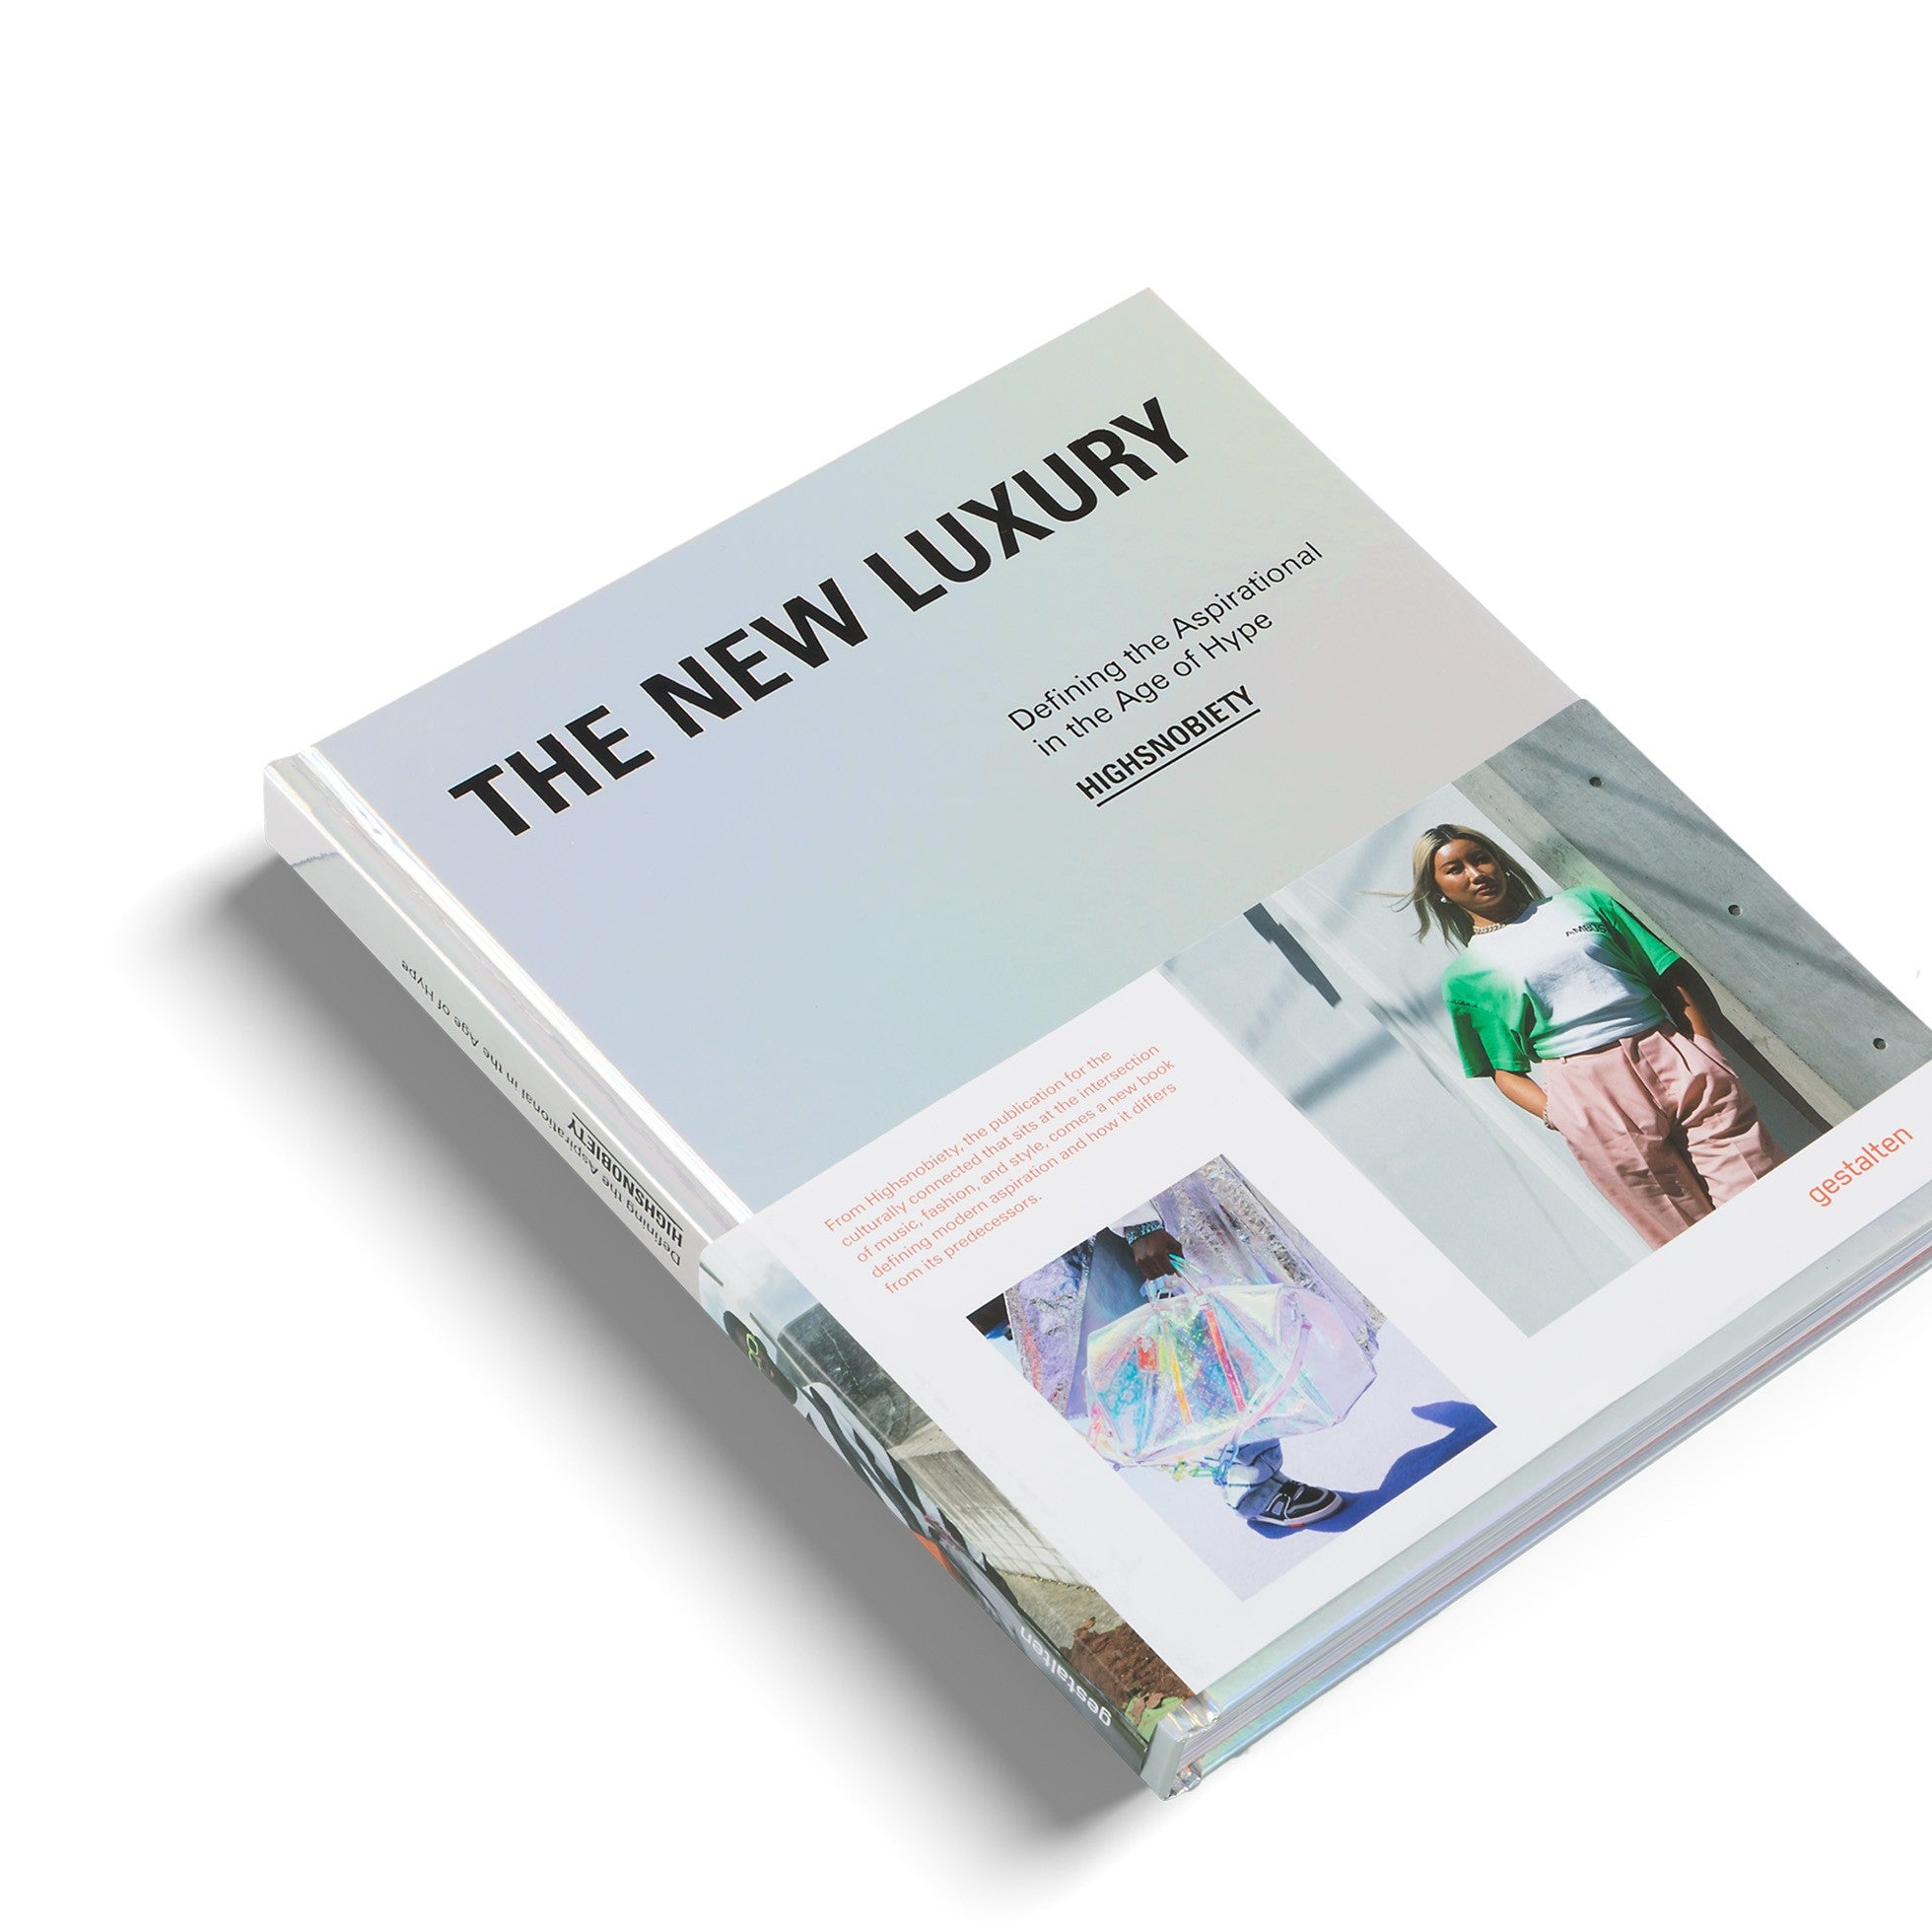 The New Luxury - Gestalten